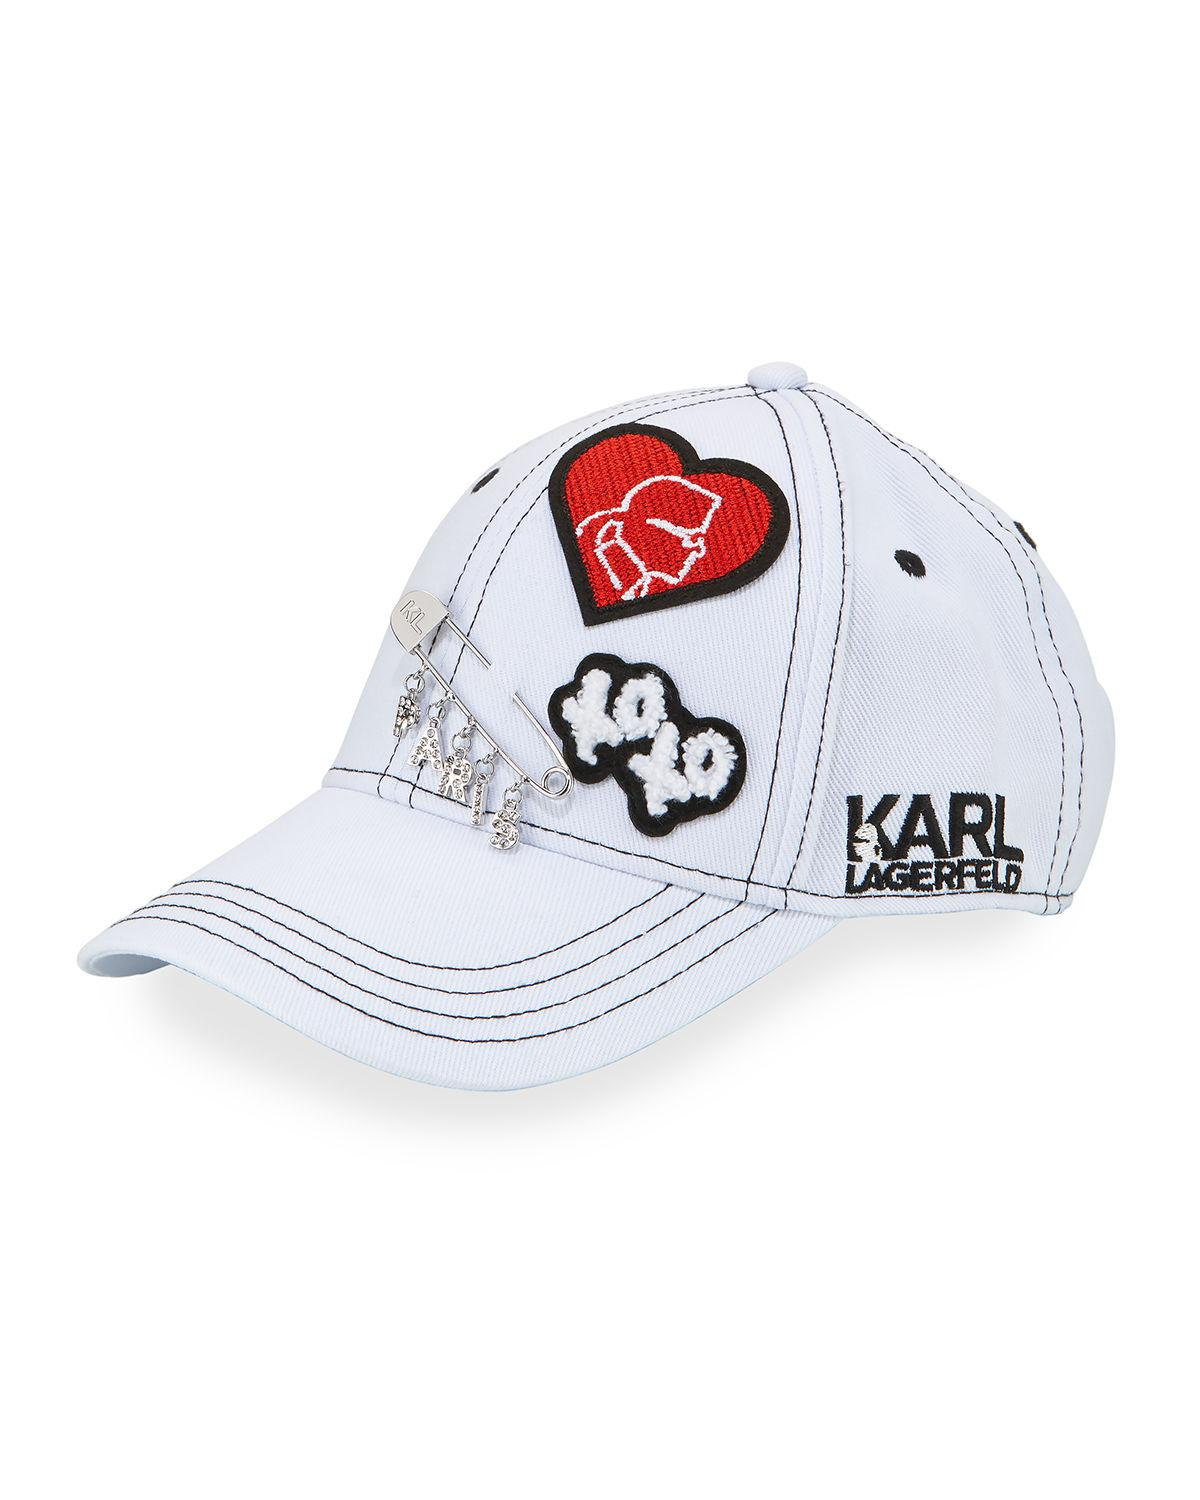 39ee0baedb785 Karl Lagerfeld Logo Patch And Charm Baseball Cap in White - Lyst